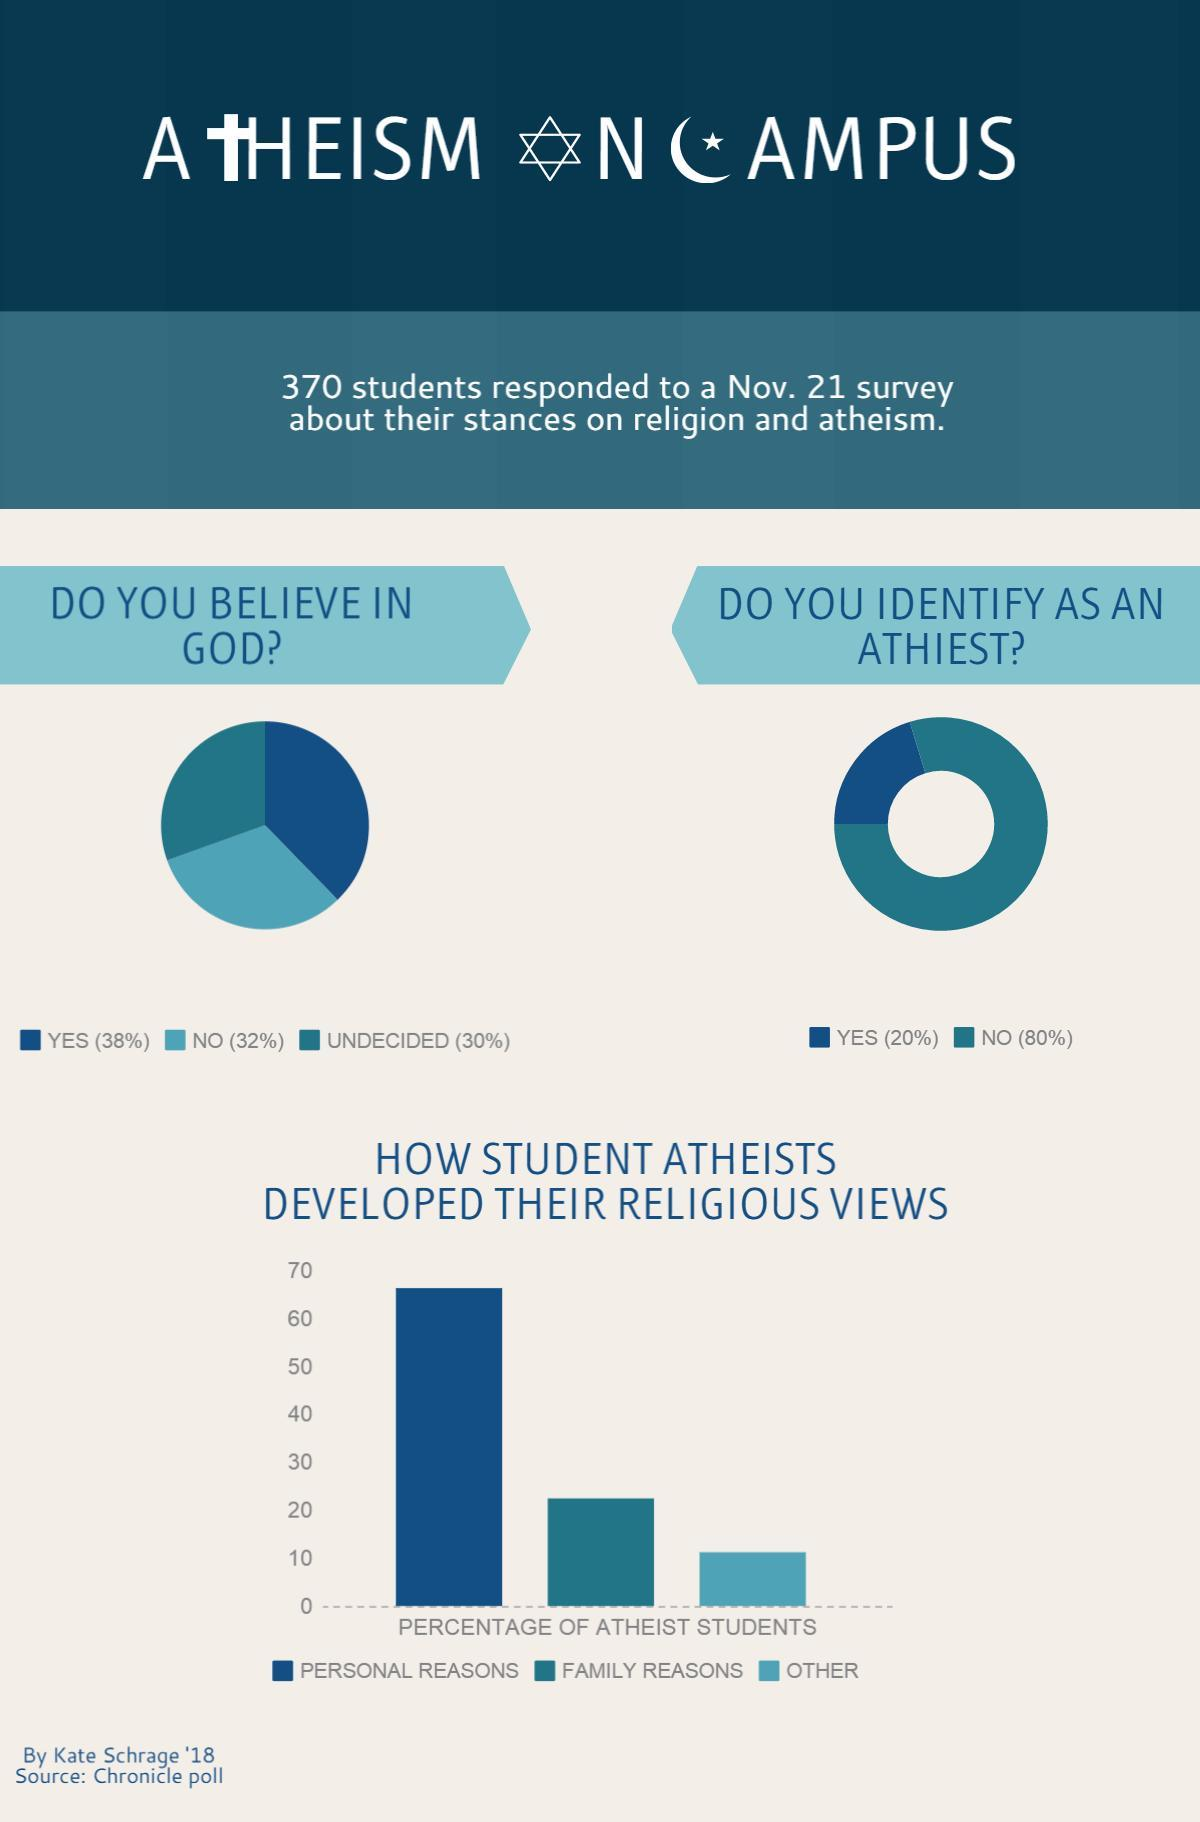 ATHEISM INFOGRAPHIC